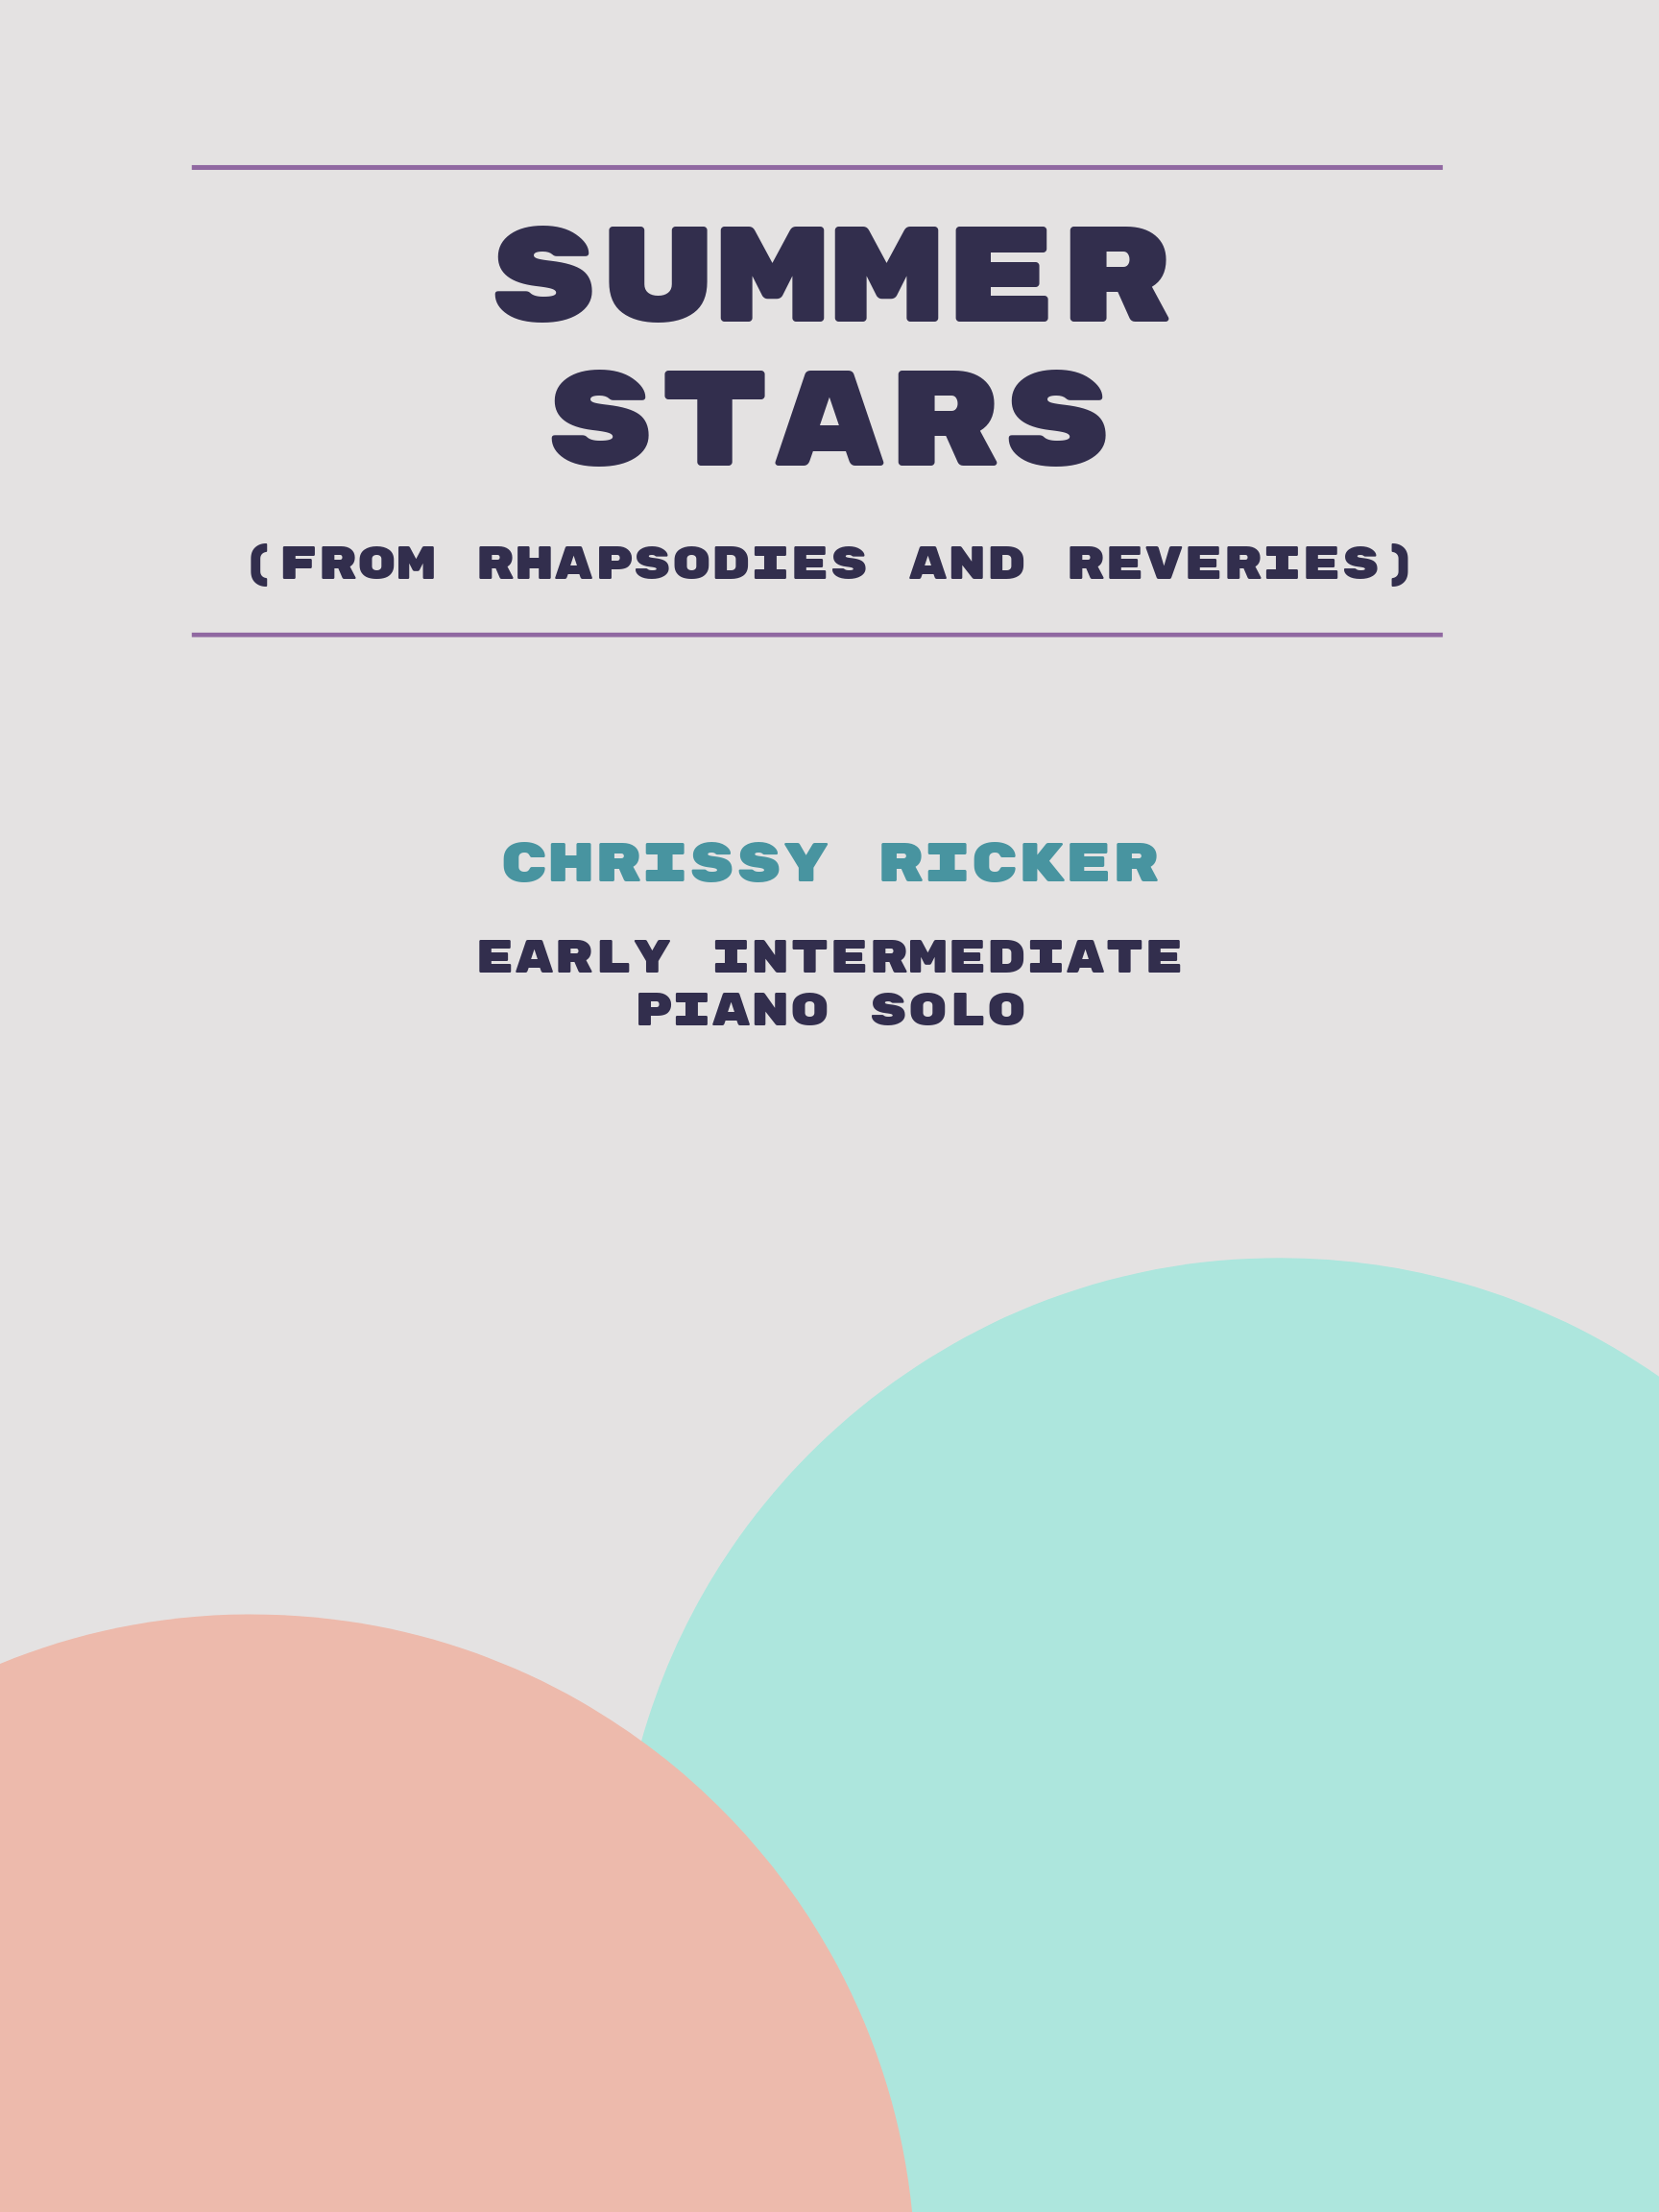 Summer Stars by Chrissy Ricker